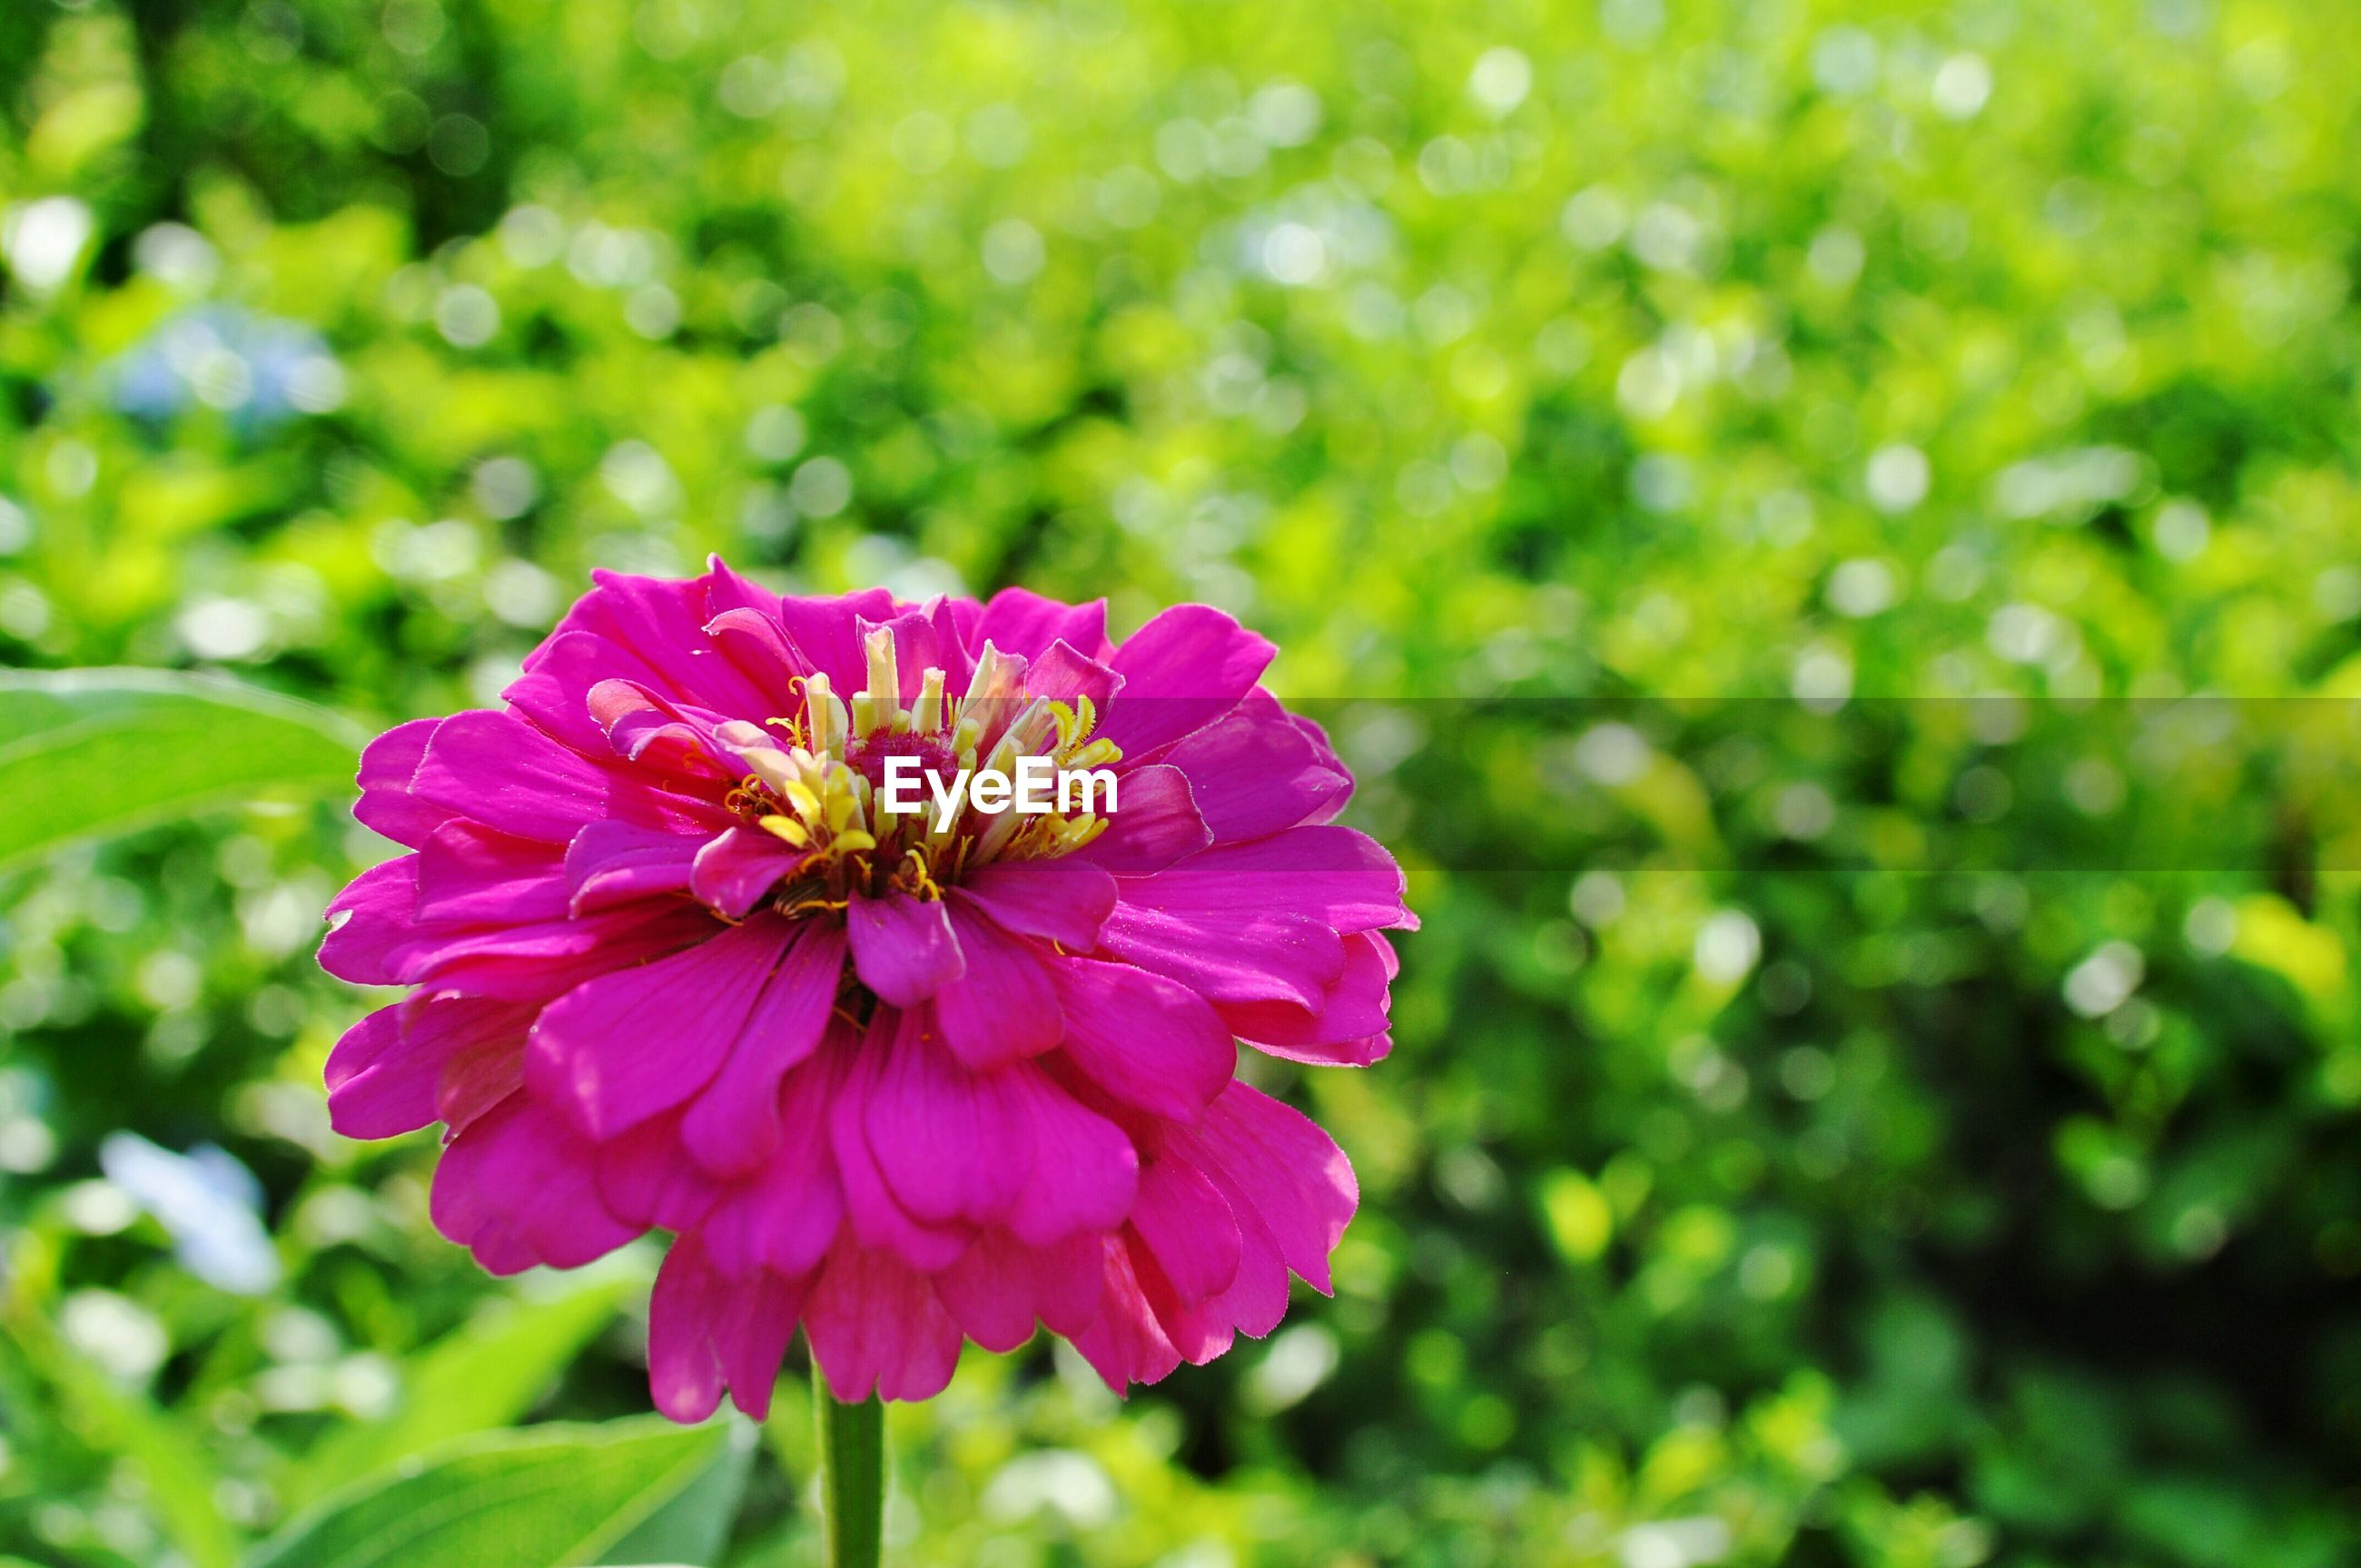 flower, freshness, petal, flower head, fragility, growth, beauty in nature, close-up, focus on foreground, blooming, nature, plant, pink color, single flower, in bloom, park - man made space, purple, pollen, day, outdoors